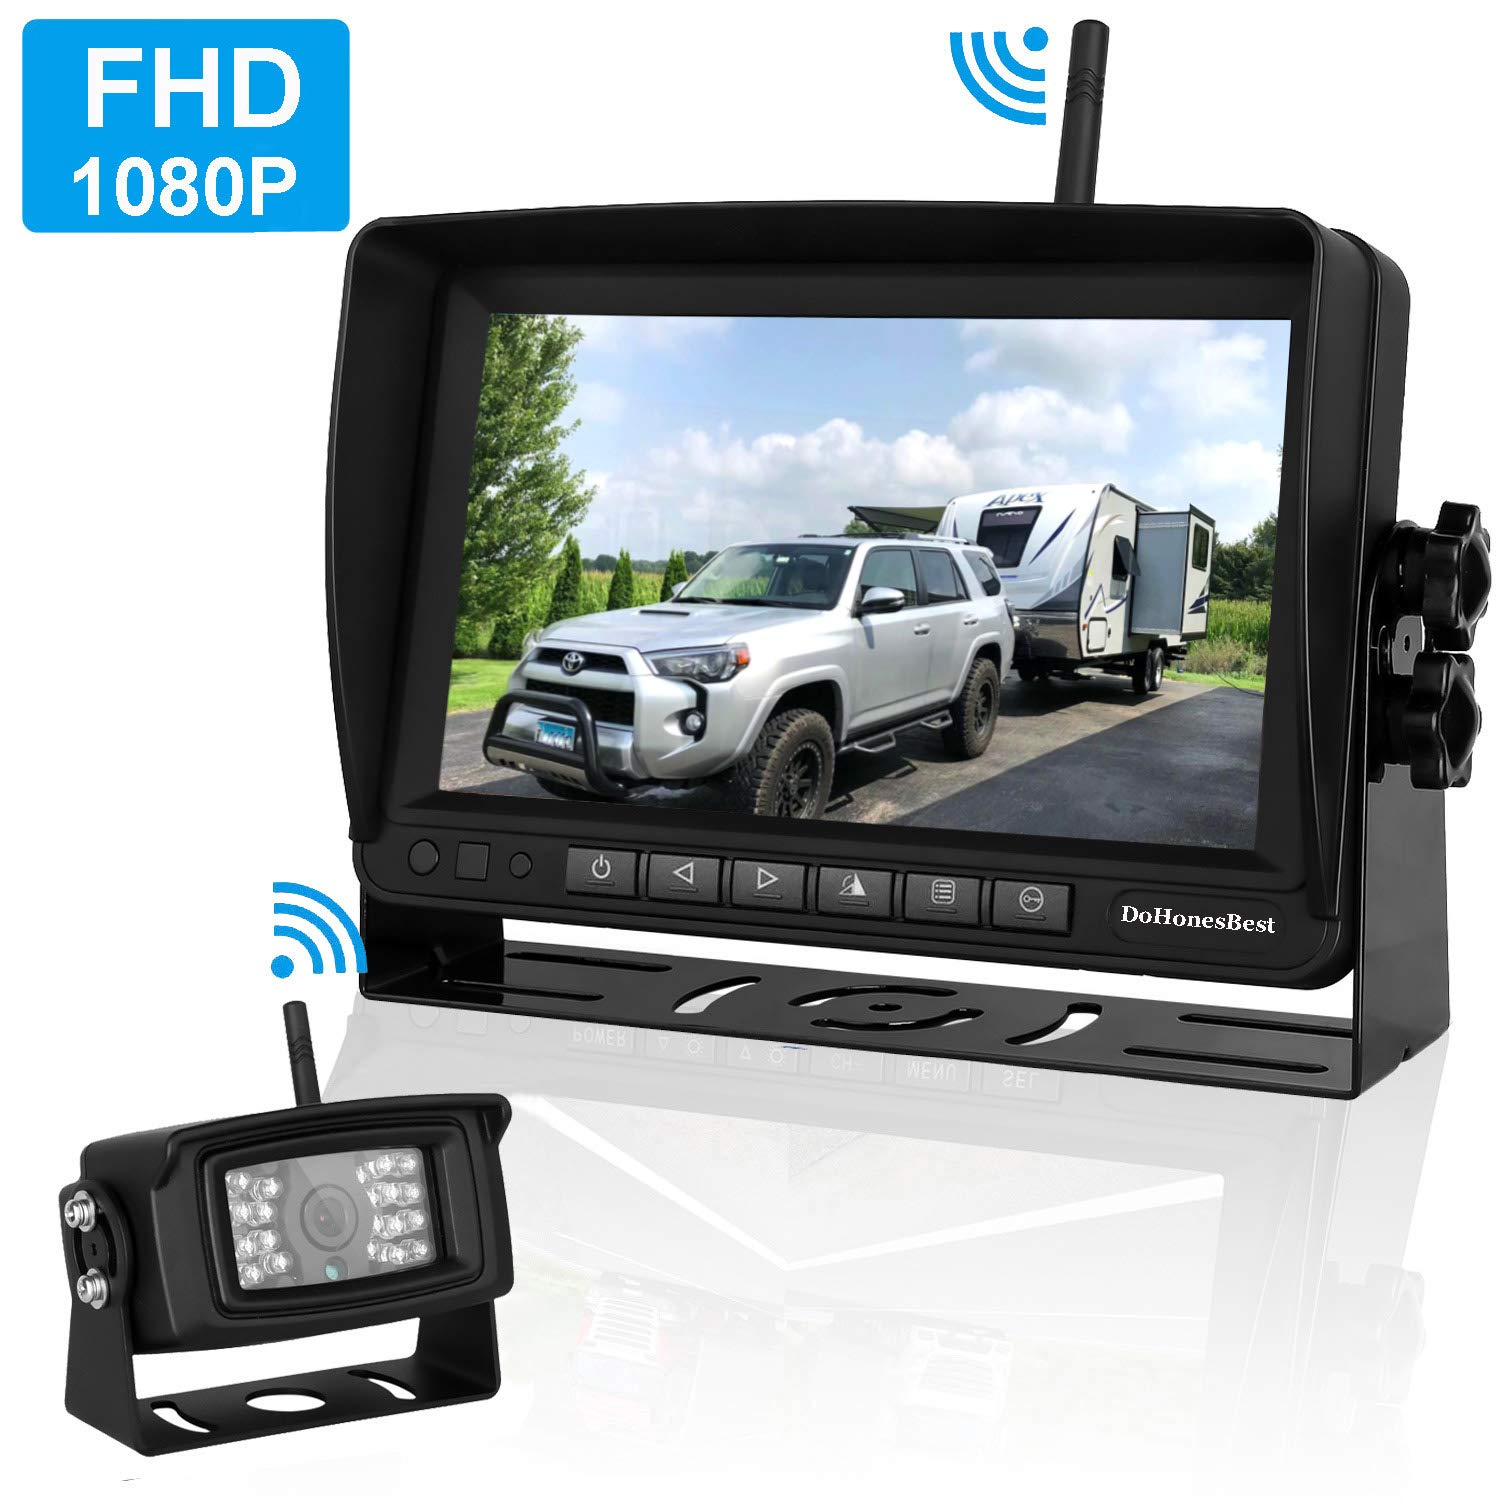 FHD 1080P Digital Wireless Backup Camera and Monitor Kit High-Speed Observation System for RVs/Motorhomes/Trucks/Trailers with 7'' Monitor Driving/Reversing Use IP69K Waterproof Super Night Vision